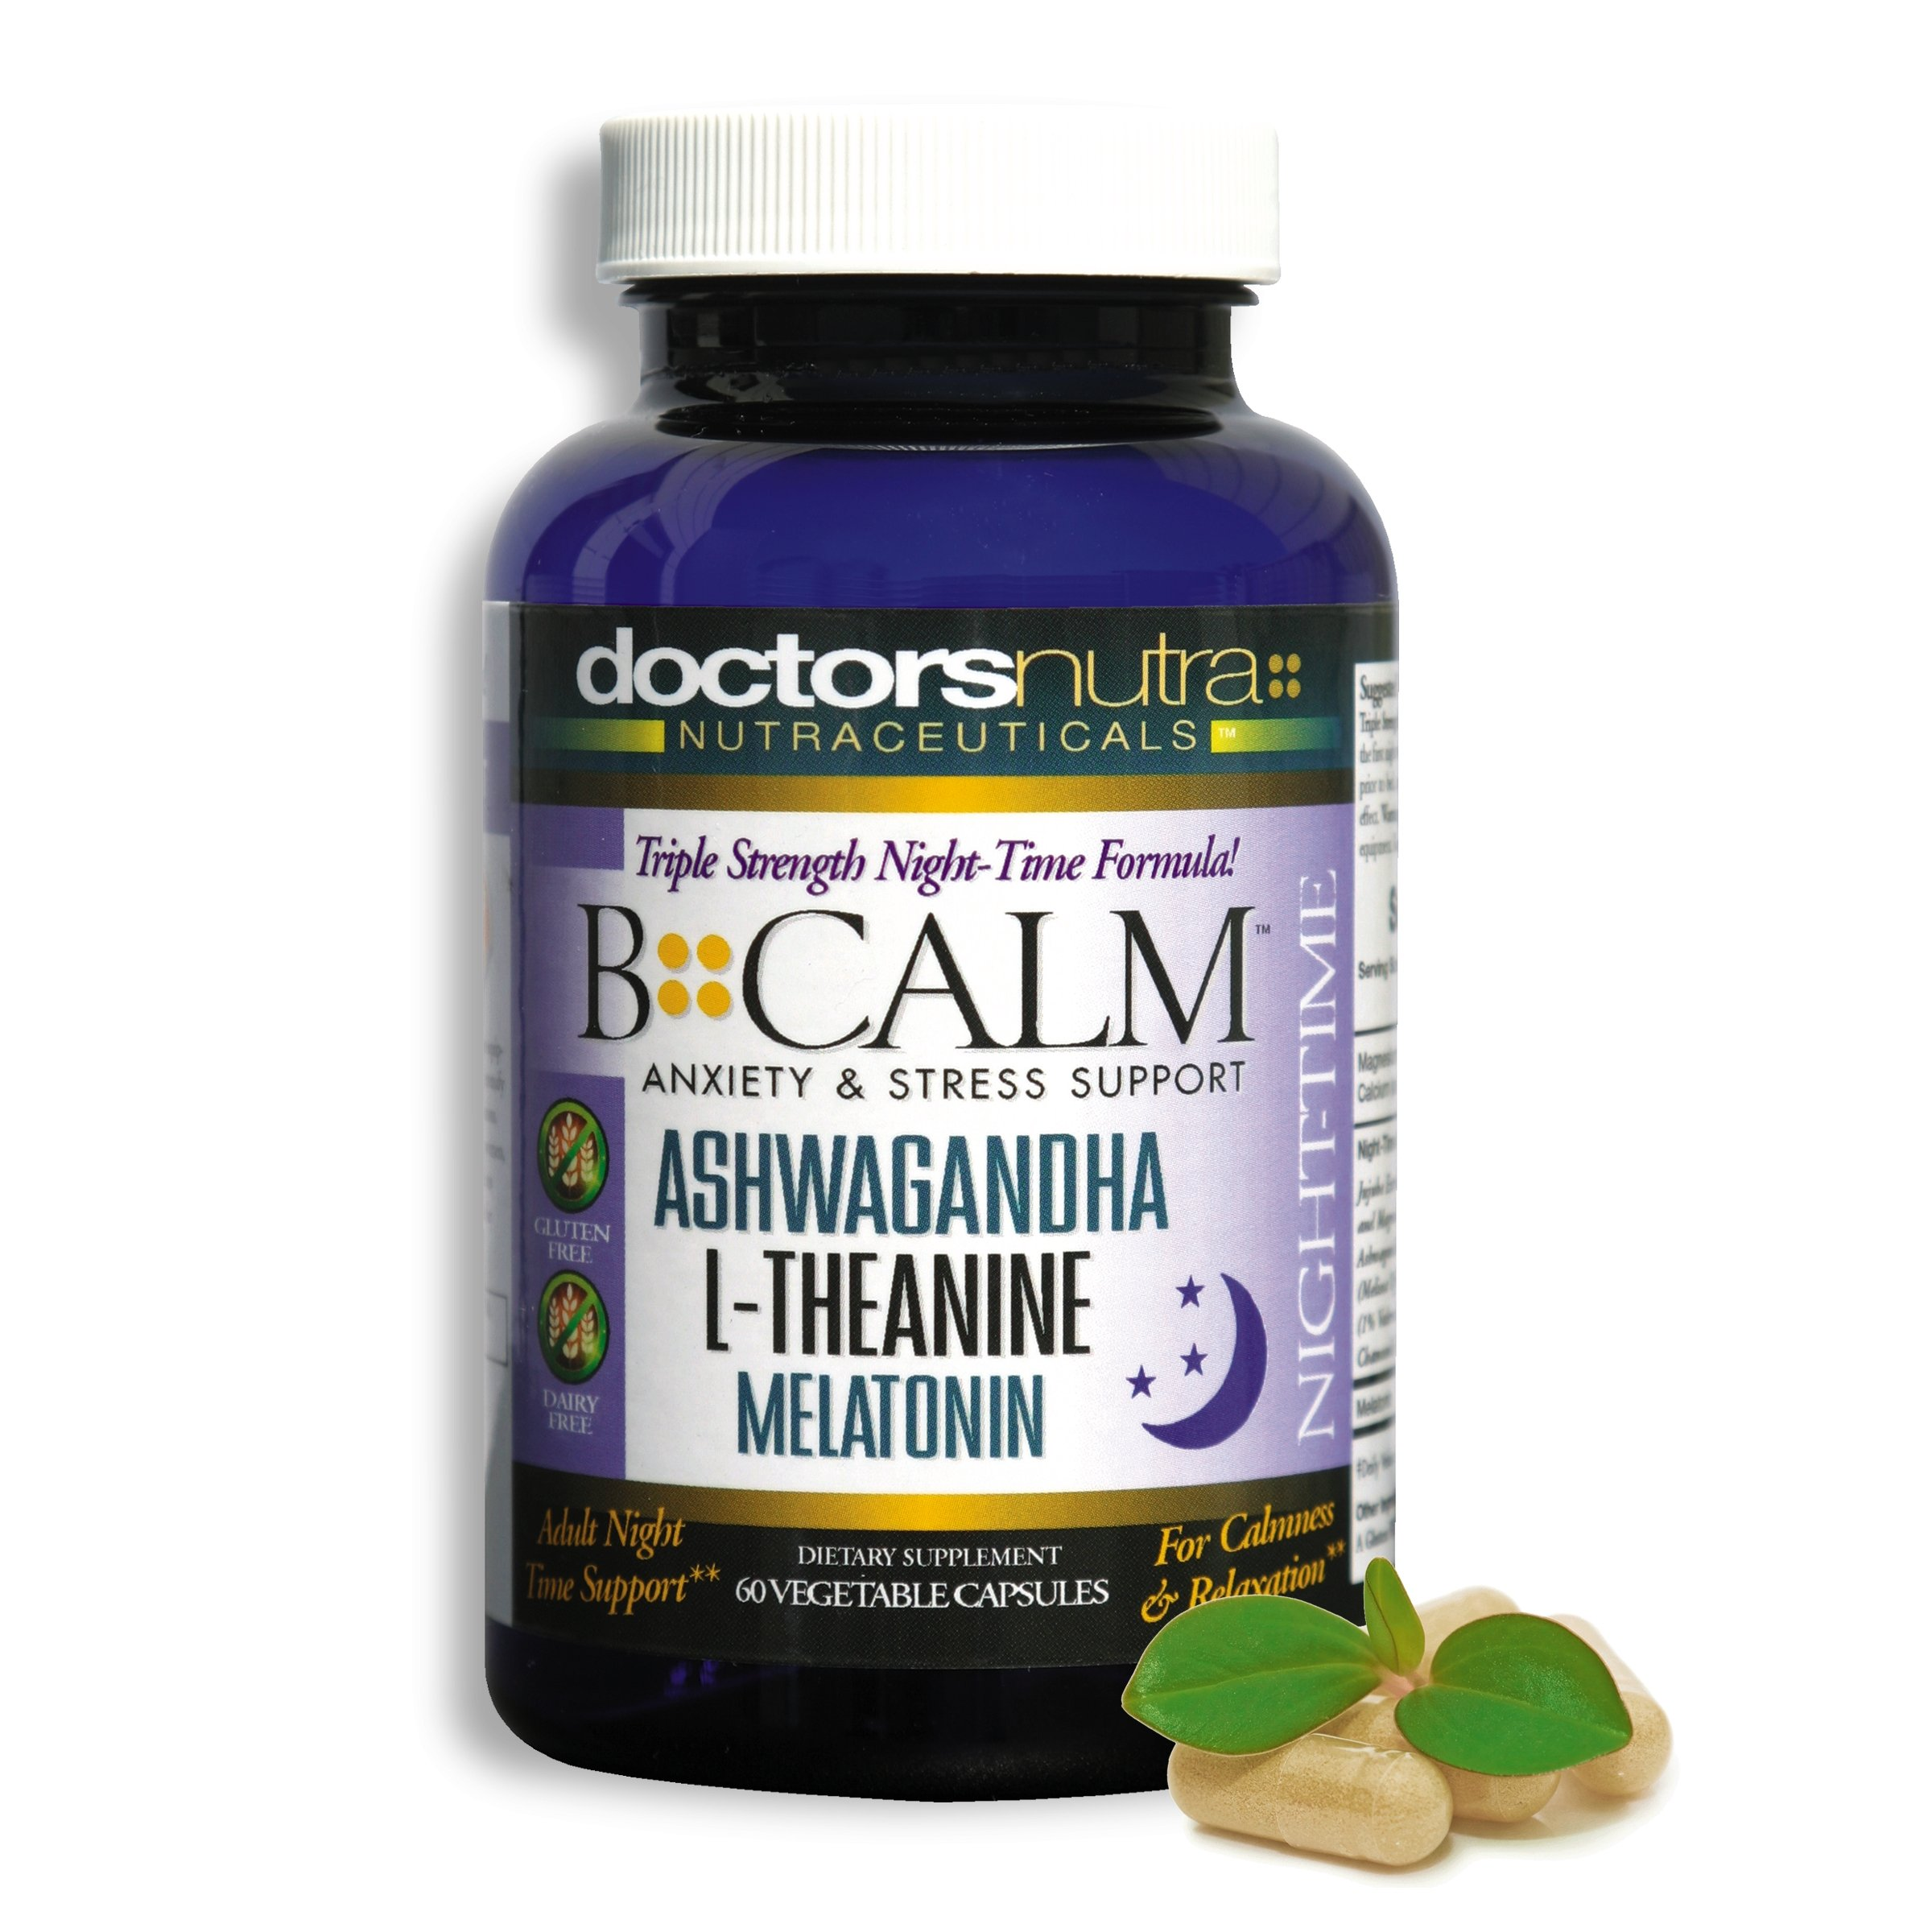 All Natural Night-Time Anxiety Relief, Stress Support | with Ashwagandha, Melatonin and